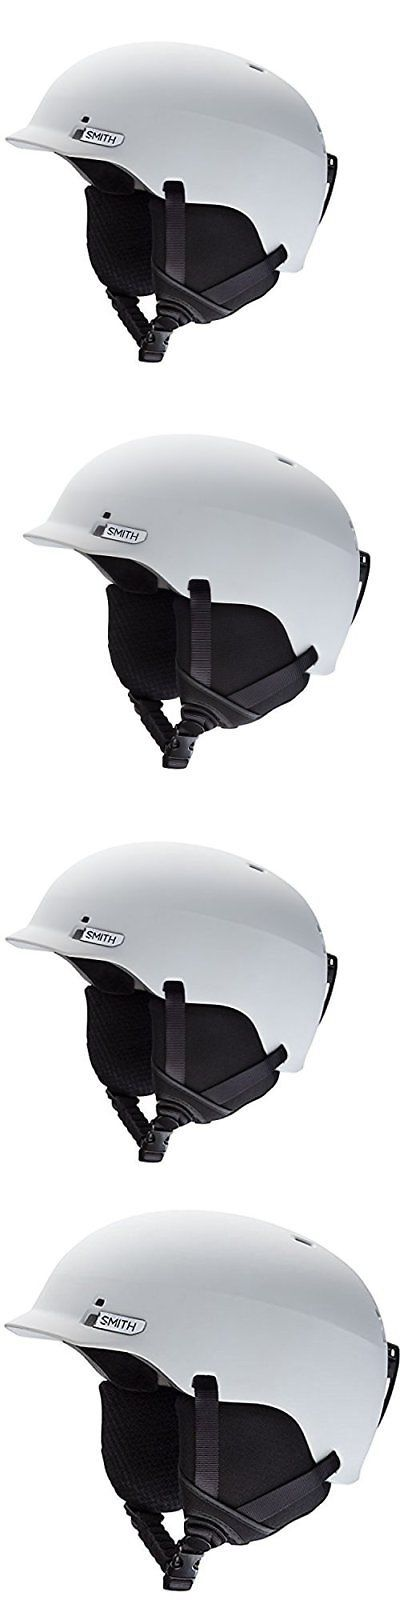 Protective Gear 36260: New Smith Optics Gage Adult Ski Snowmobile Helmet - Matte White Large -> BUY IT NOW ONLY: $64.99 on eBay!